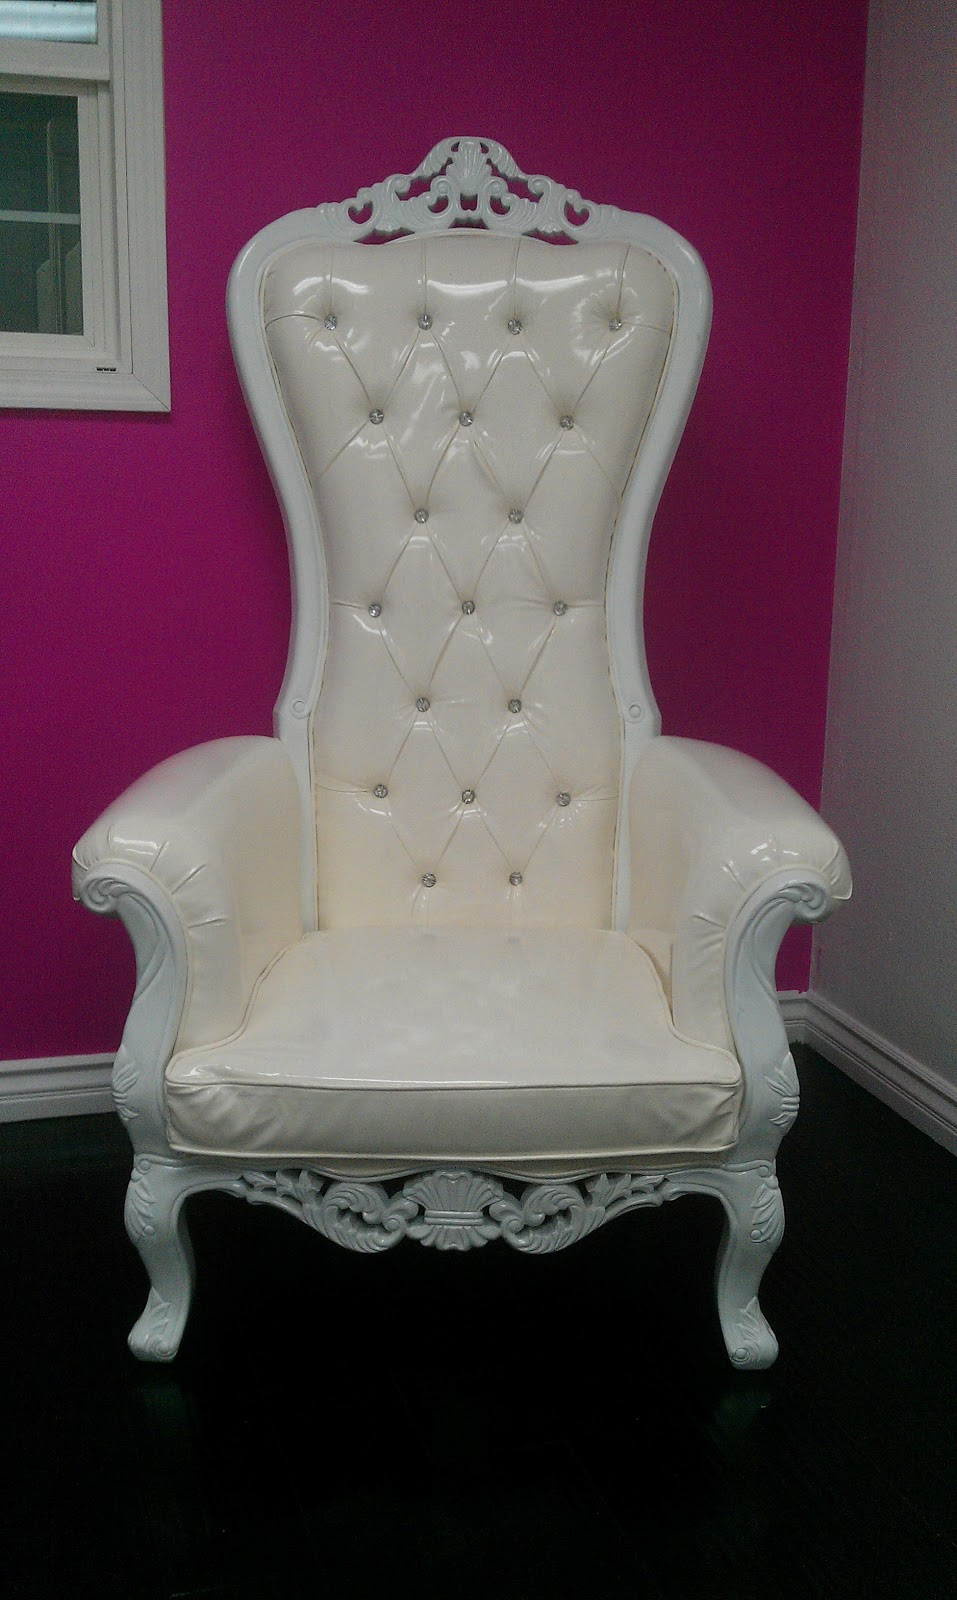 chair rental chicago car covers walmart the mod spot new kings chairs thrones